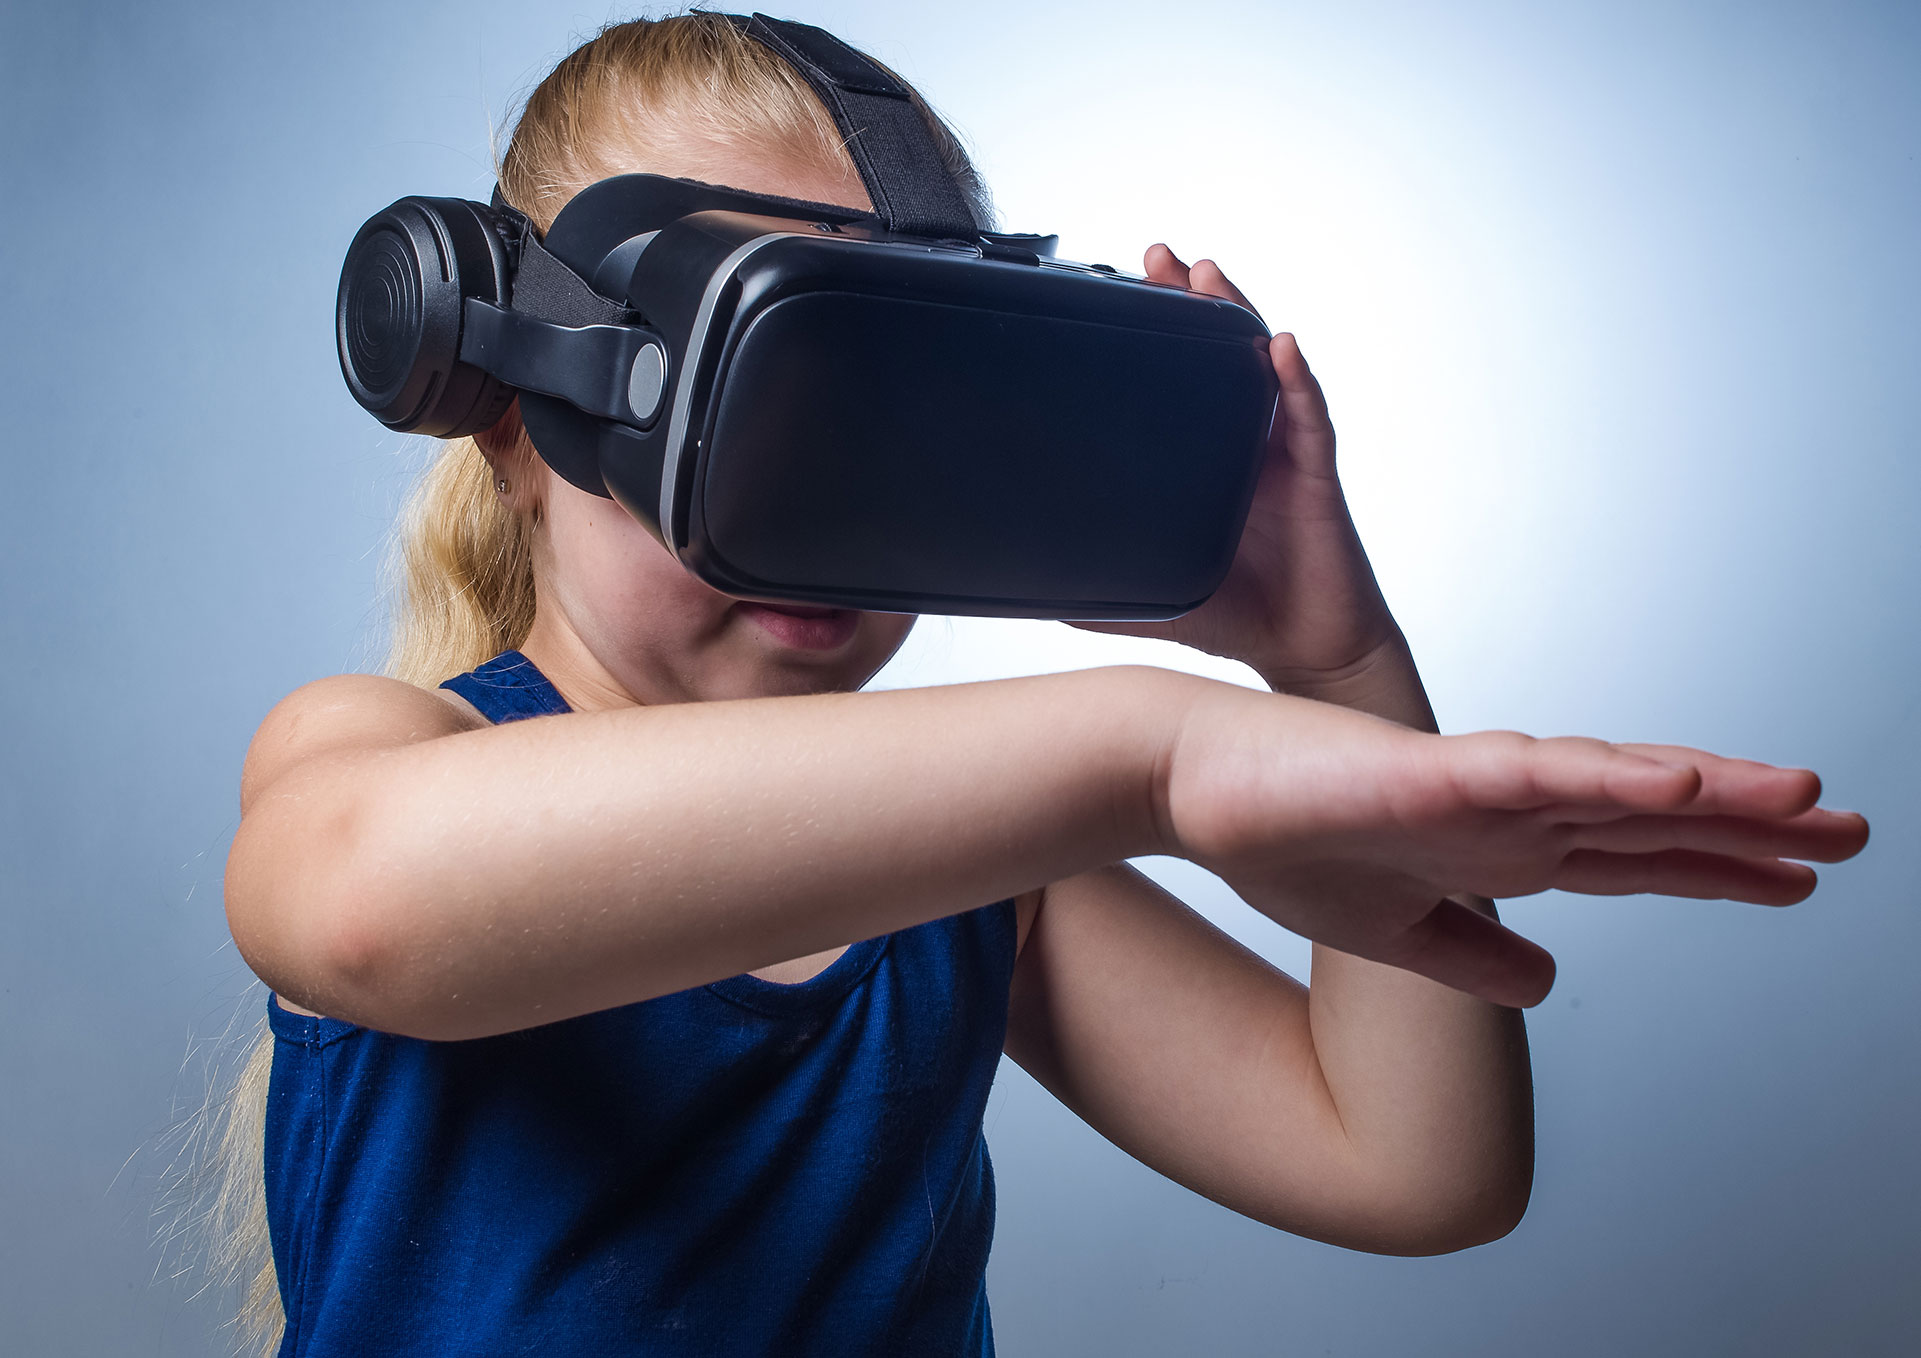 Toward Hand Functions Rehabilitation Using the Virtual World for Pre-school Children with Cerebral Palsy, International Journal of Emerging Technologies in Learning, 2020